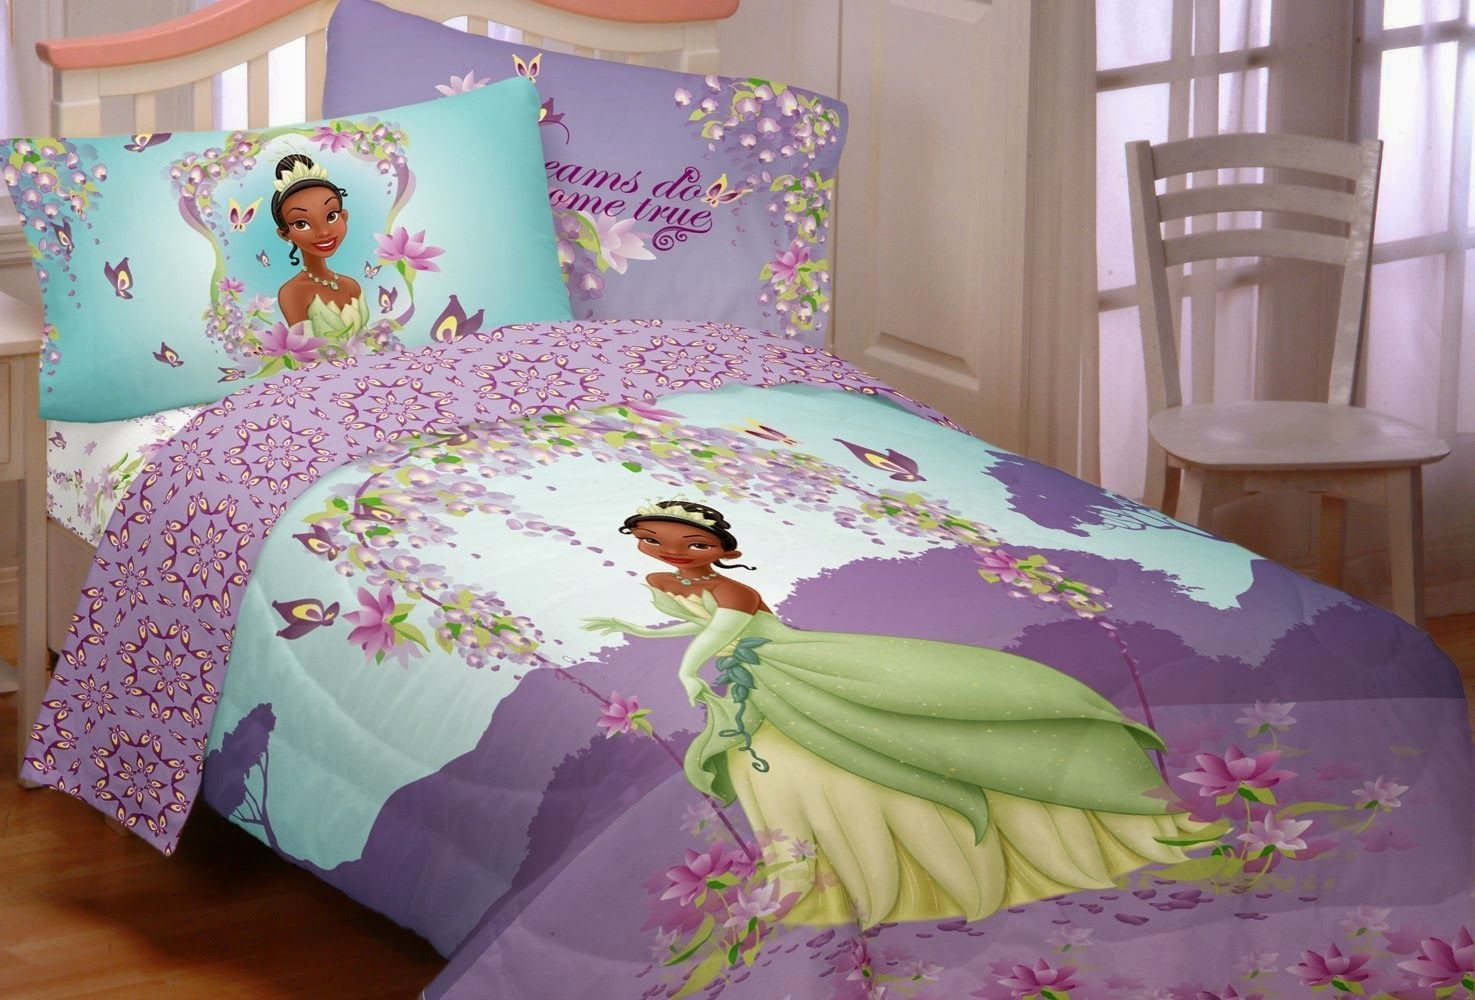 Bedroom Decor Ideas And Designs How To Decorate A Disney S Princess Tiana Themed The Frog